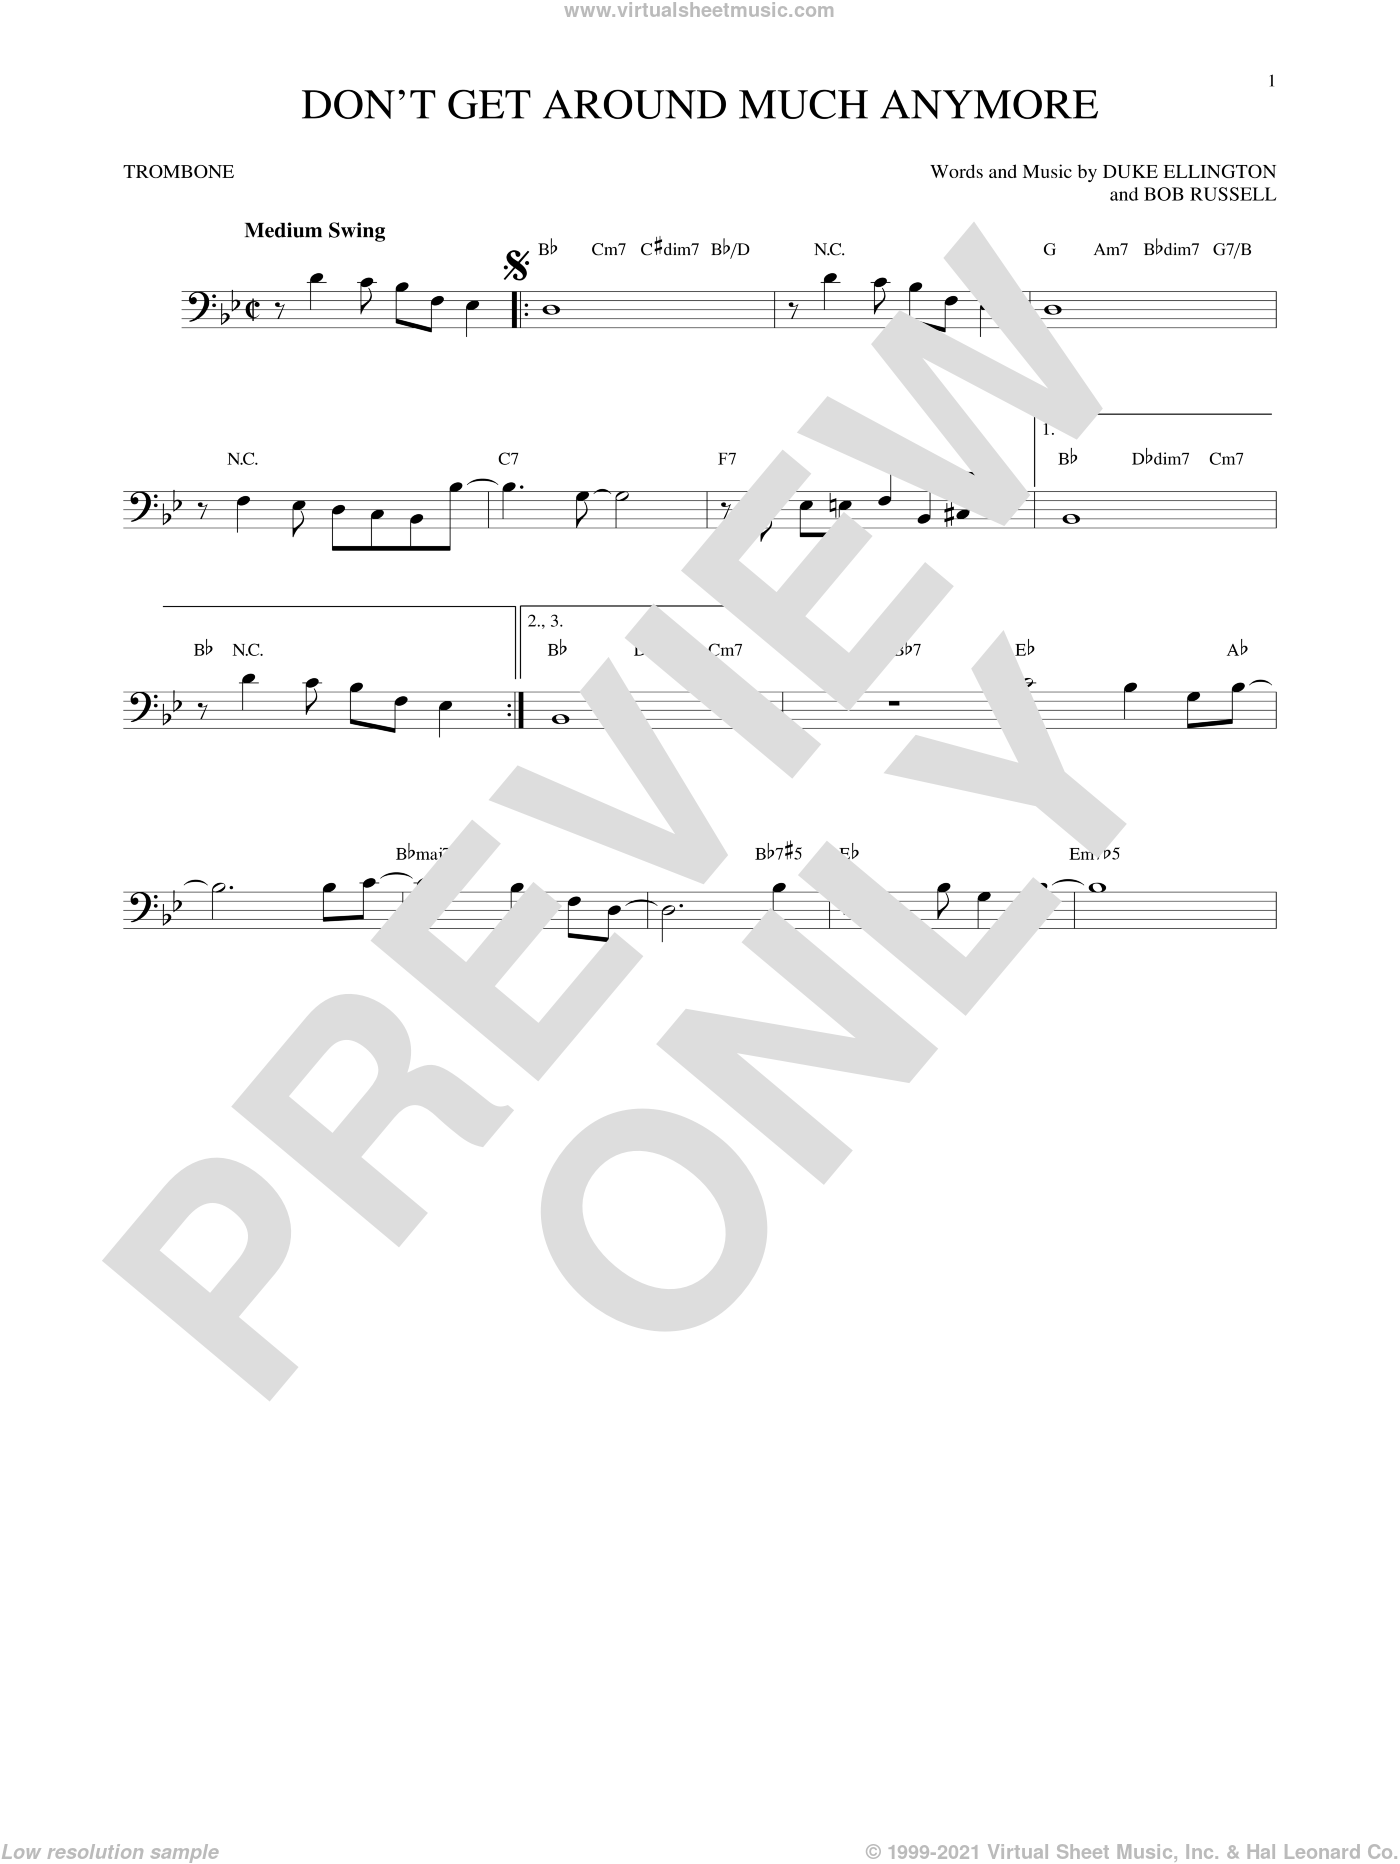 Don't Get Around Much Anymore sheet music for trombone solo by Duke Ellington and Bob Russell, intermediate skill level